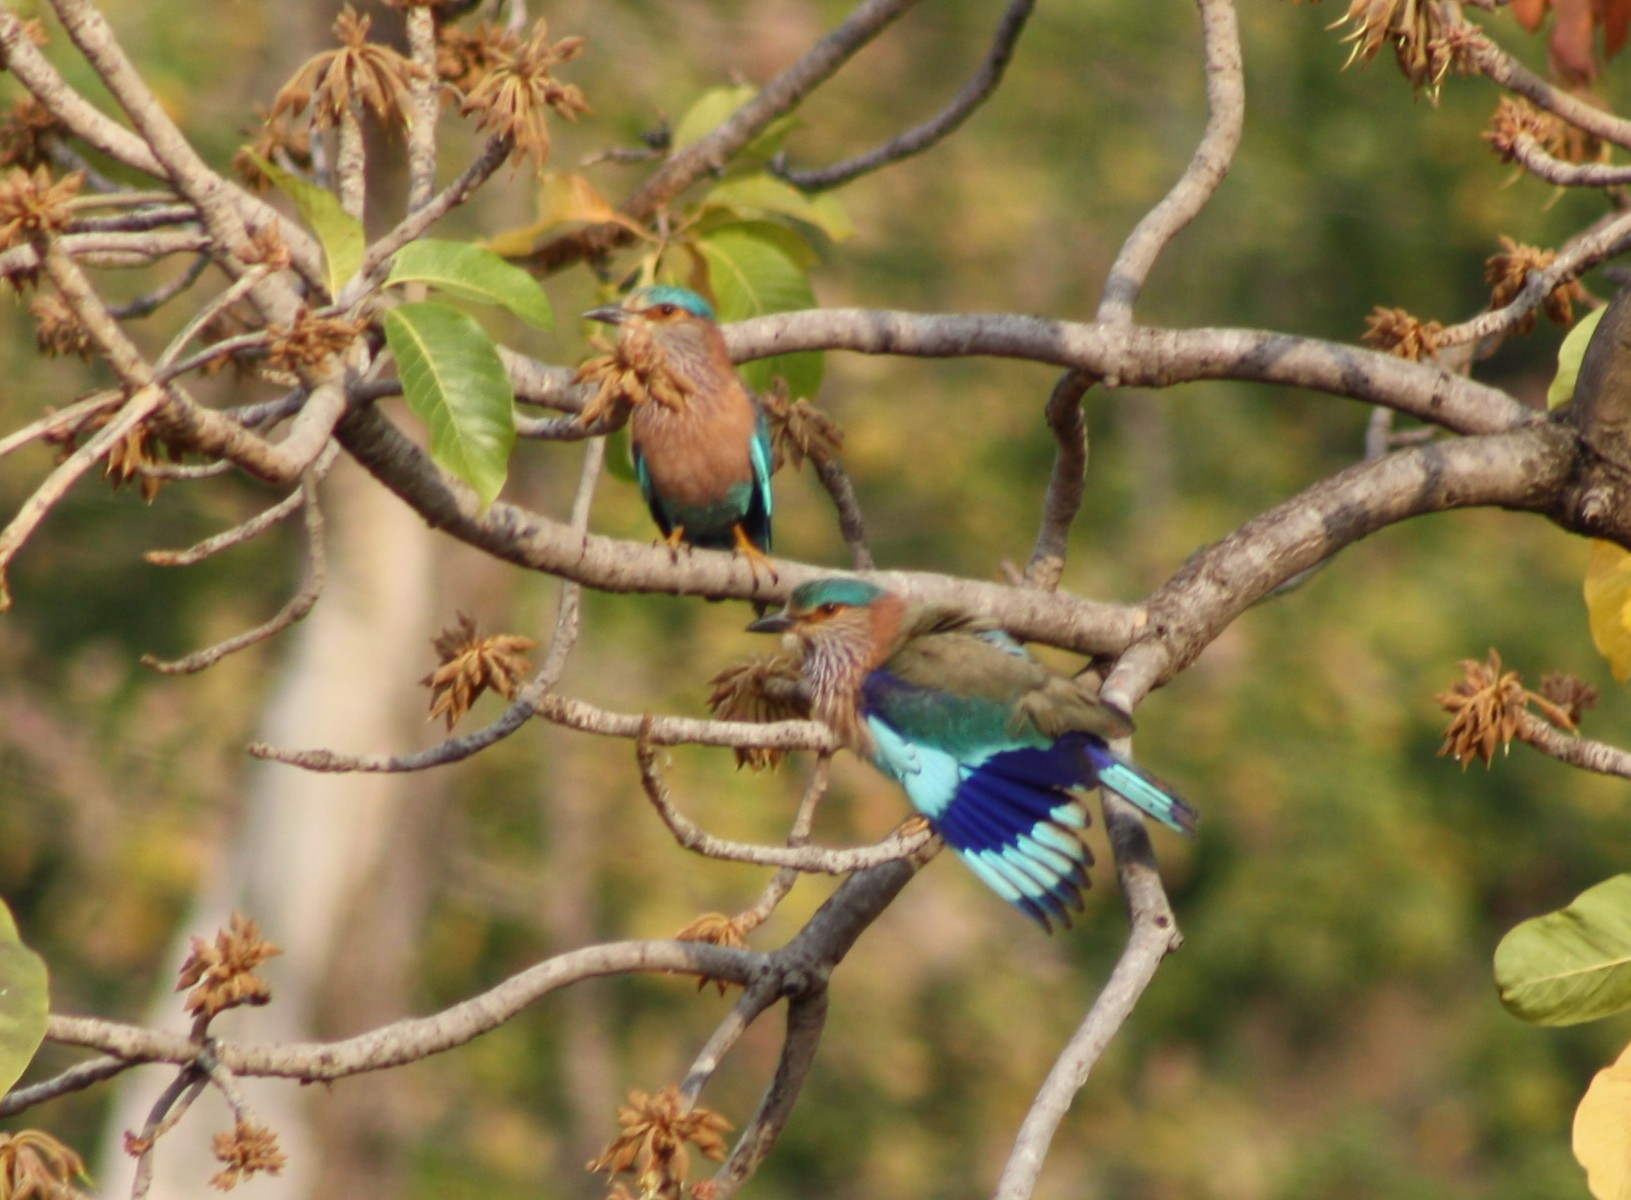 a description of the indian roller The european roller resembles a crow in size and build, but has stunningly colourful plumage, very unlike a crow the head, neck .